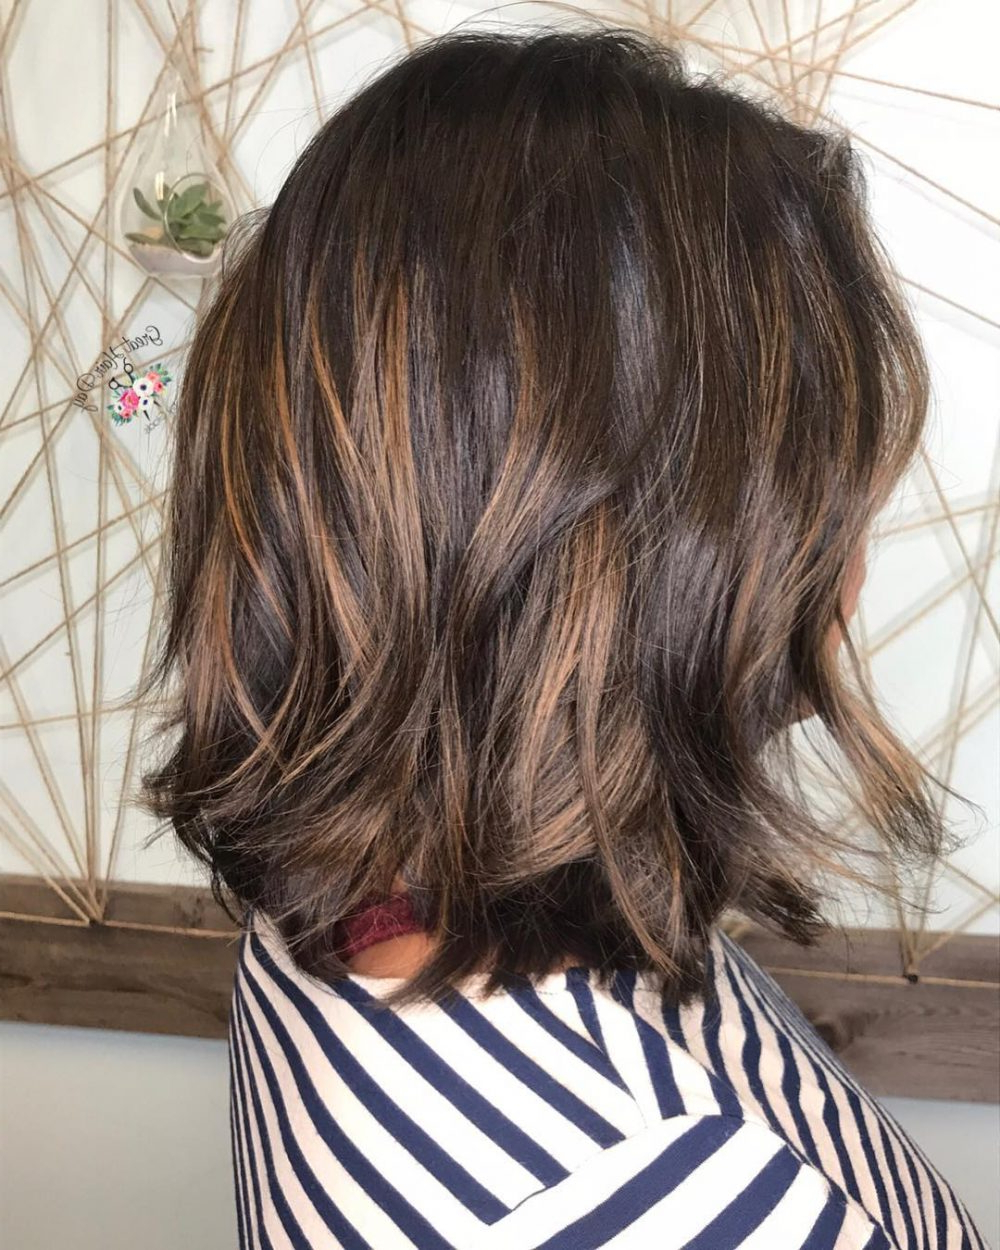 34 Sweetest Caramel Highlights On Light To Dark Brown Hair (2018) Within Curly Dark Brown Bob Hairstyles With Partial Balayage (View 9 of 20)